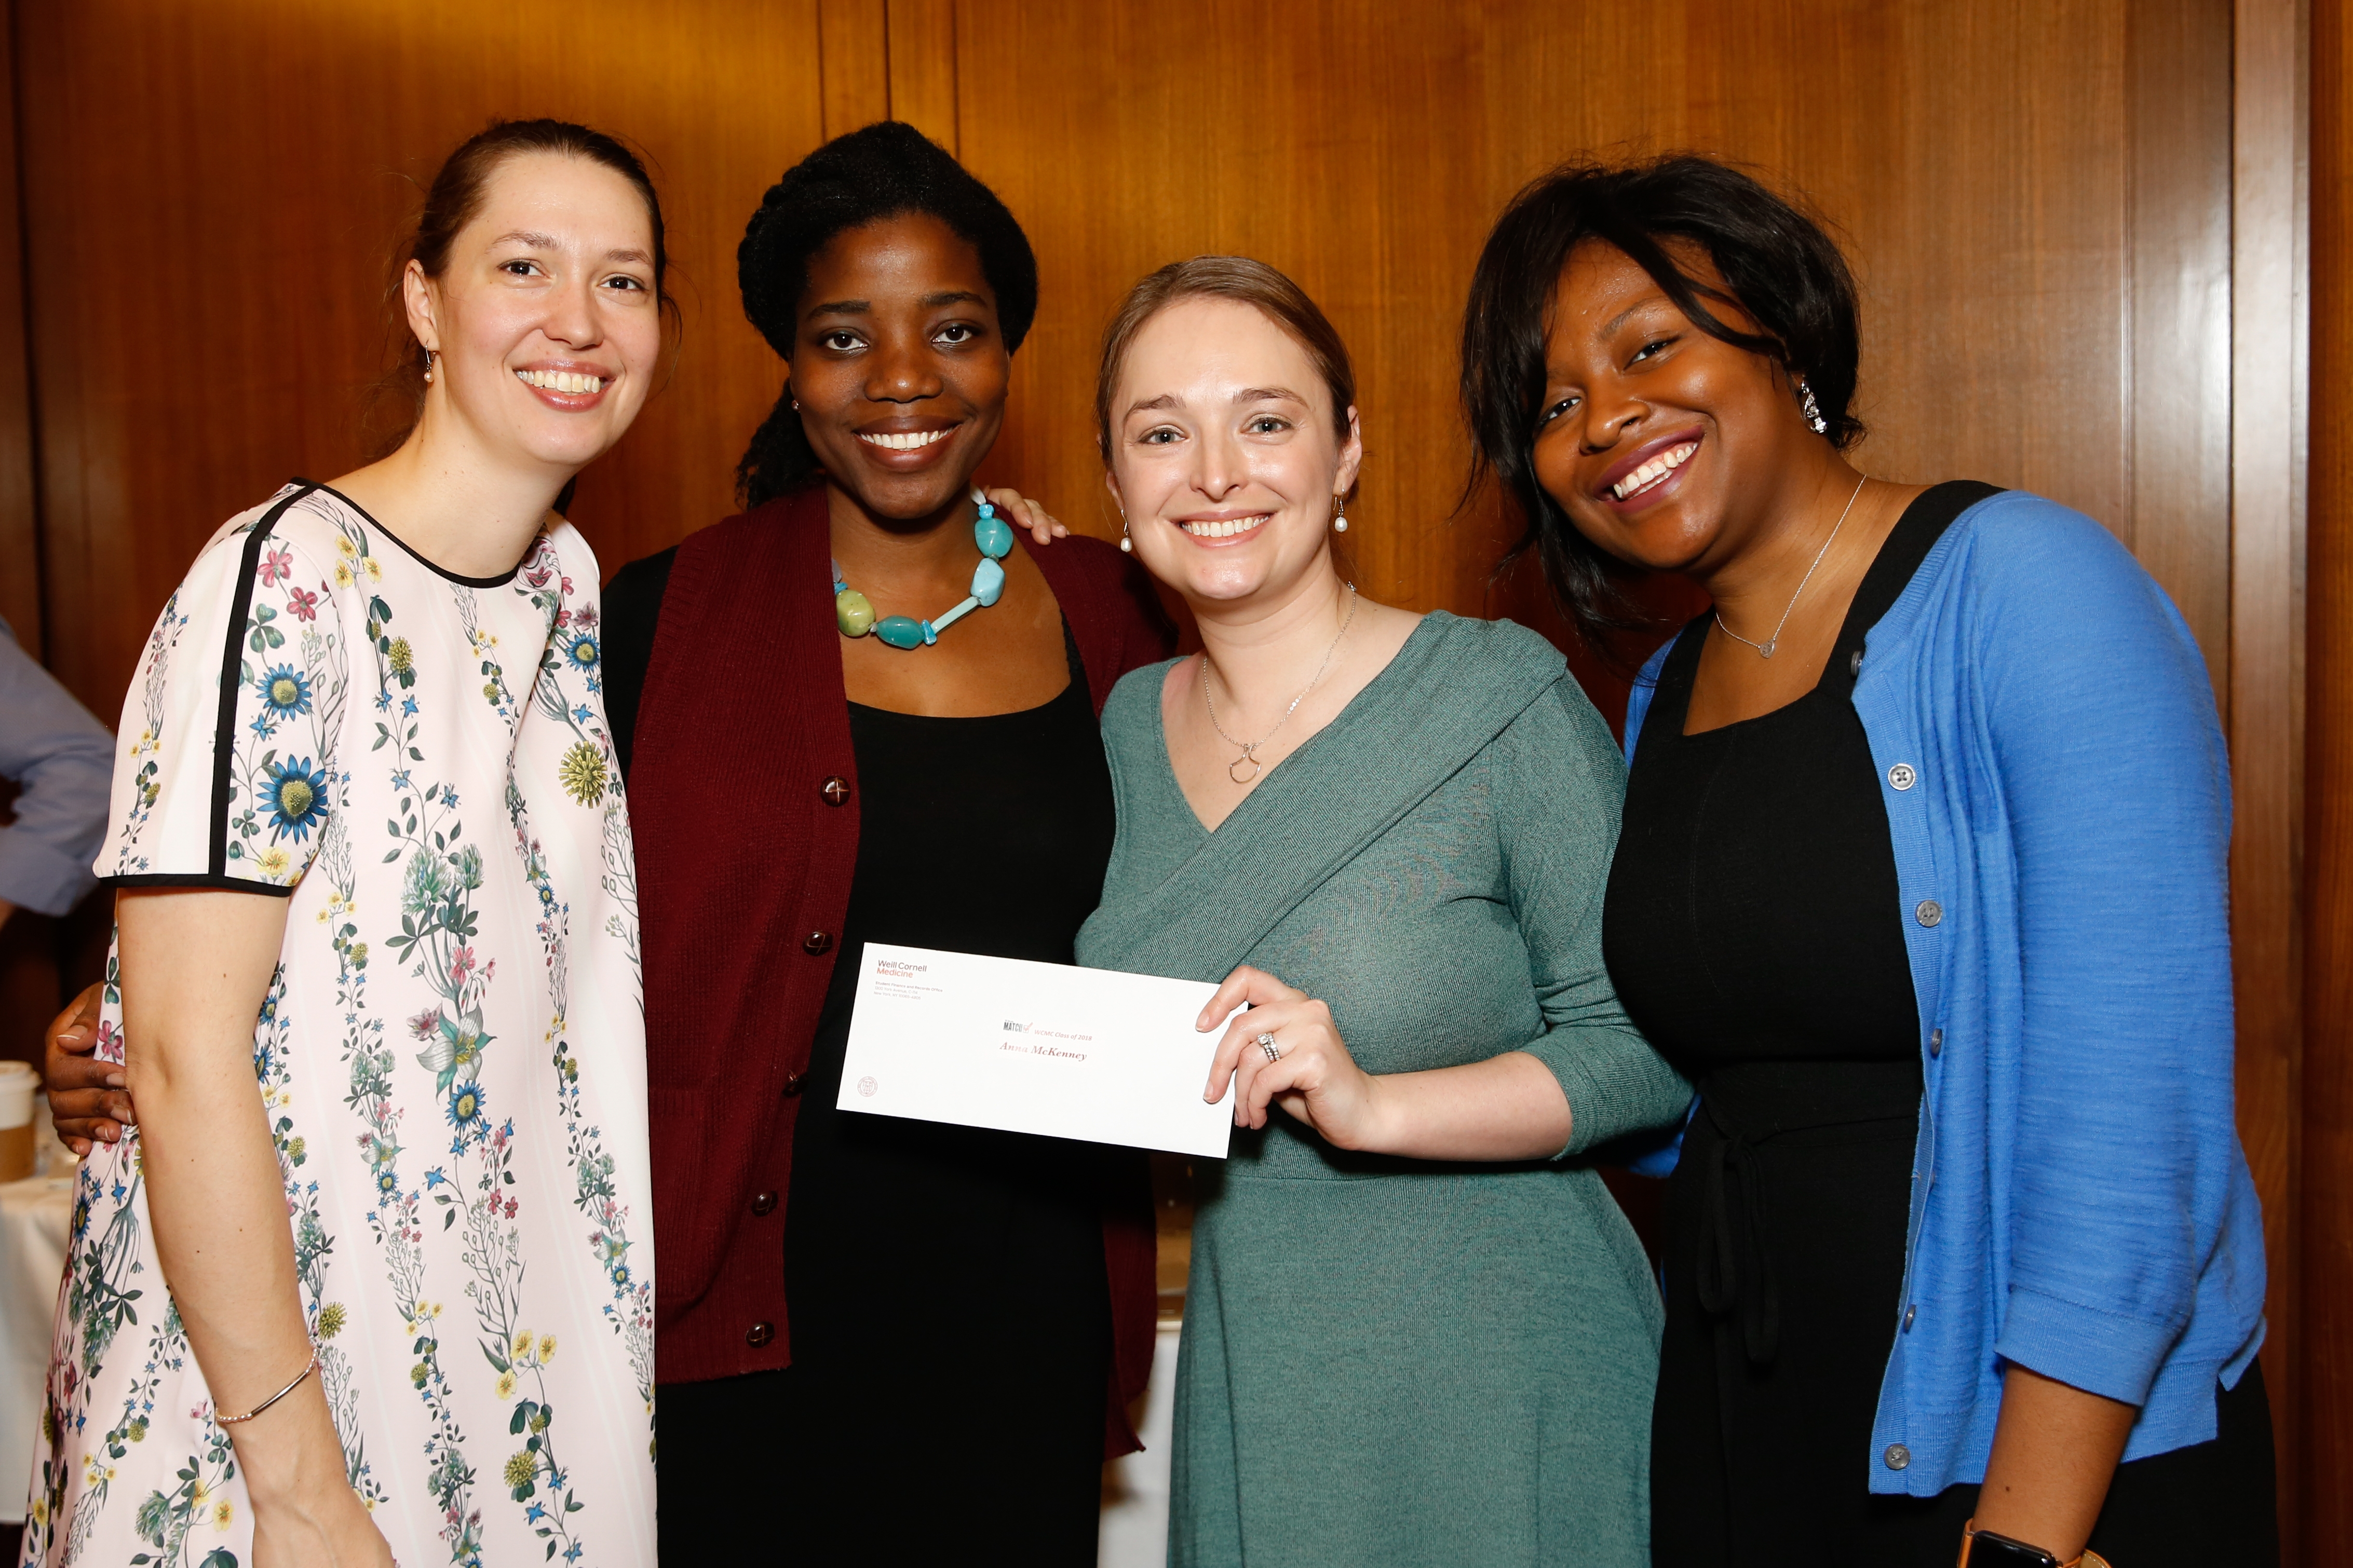 (From left) M.D.-Ph.D students Jennifer Chia, Amma Asare, Sophie McKenney, Rolaki Alabi during Match Day on March 16.